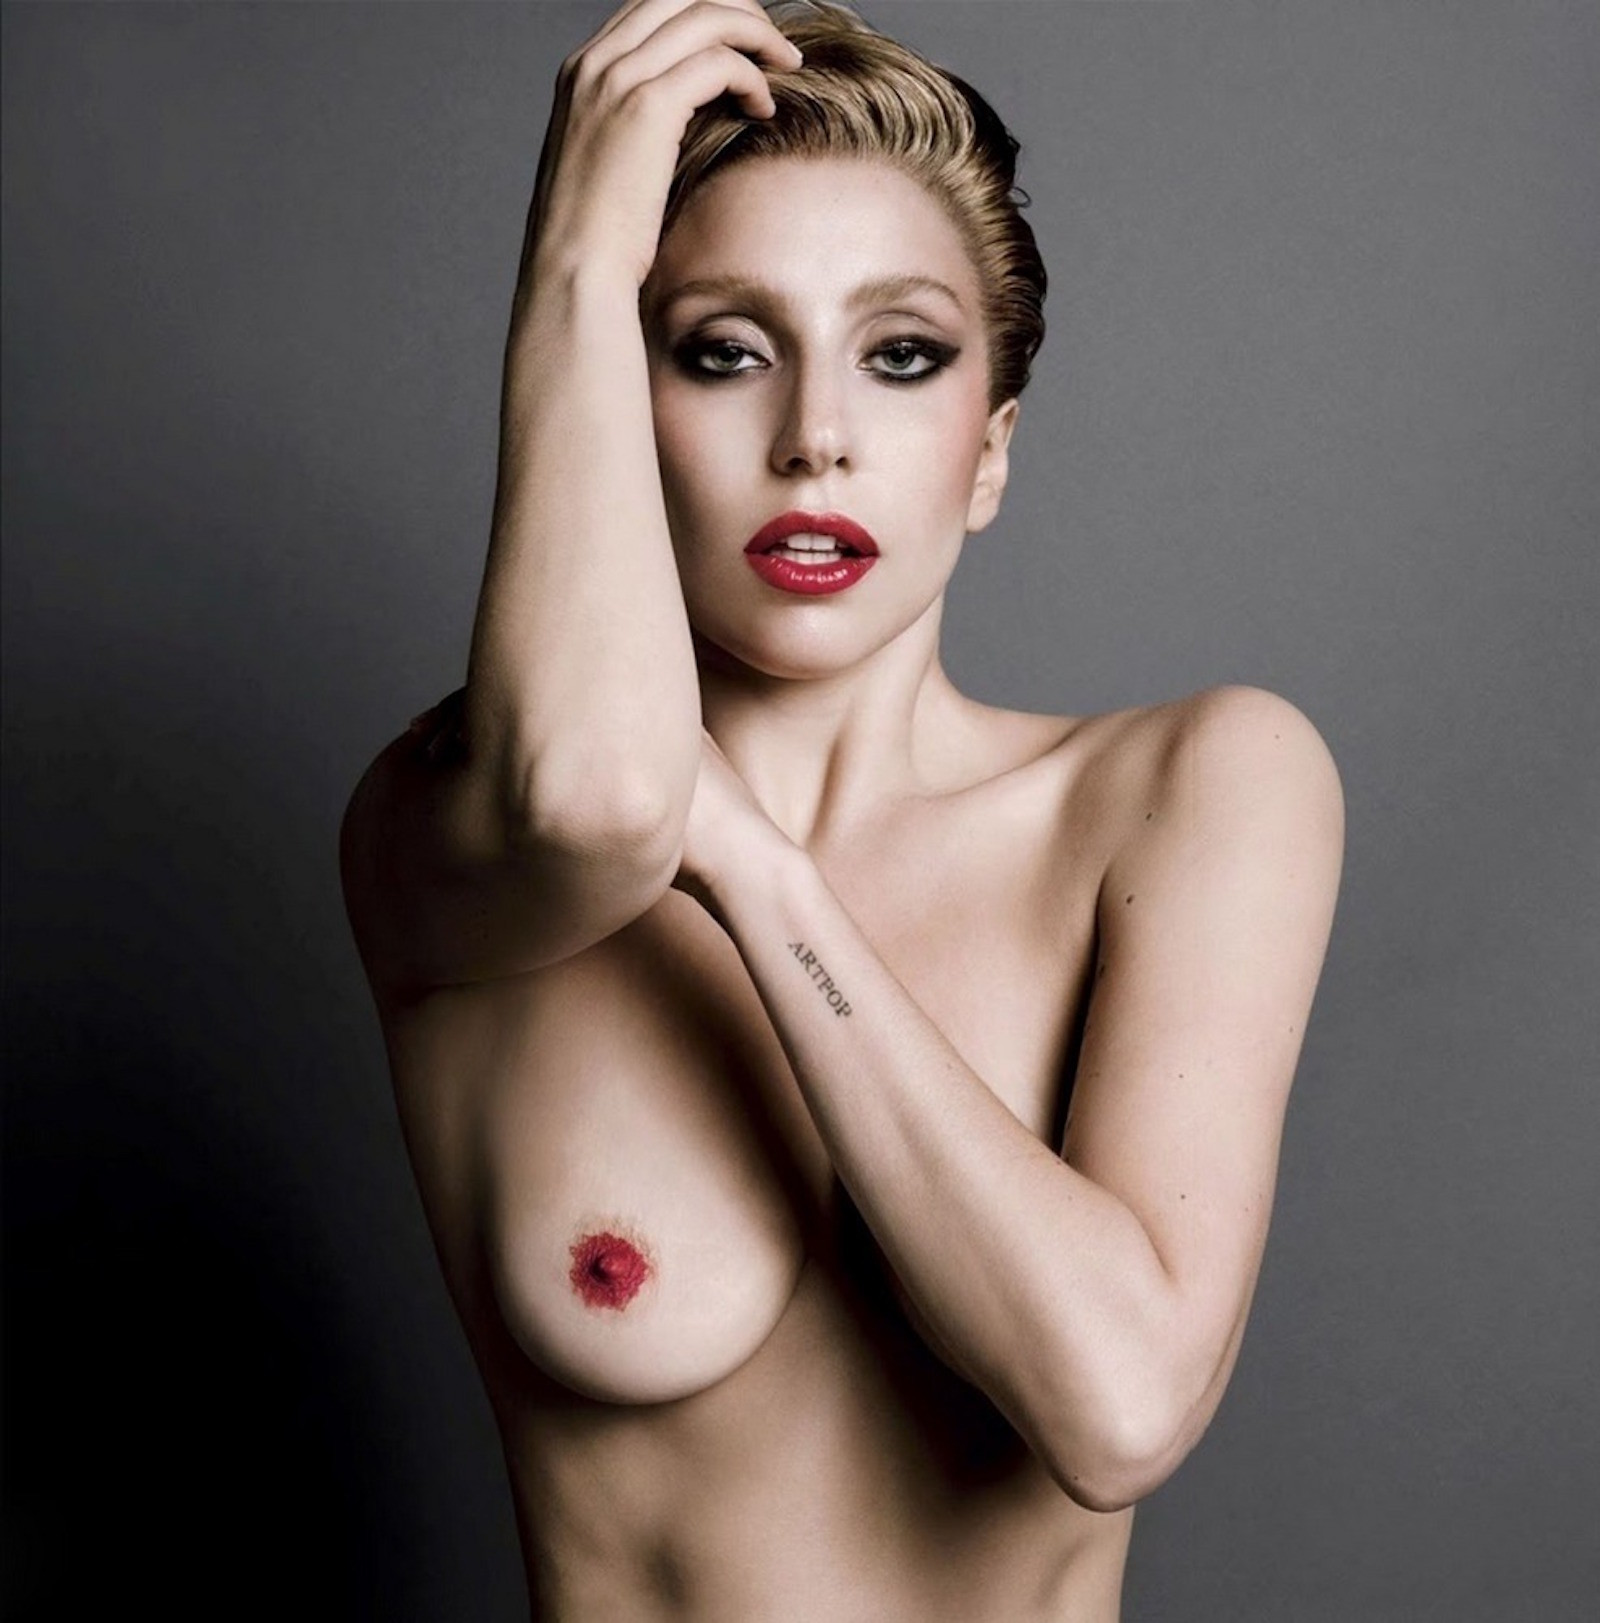 holden-lady-gaga-naked-act-mature-secretaries